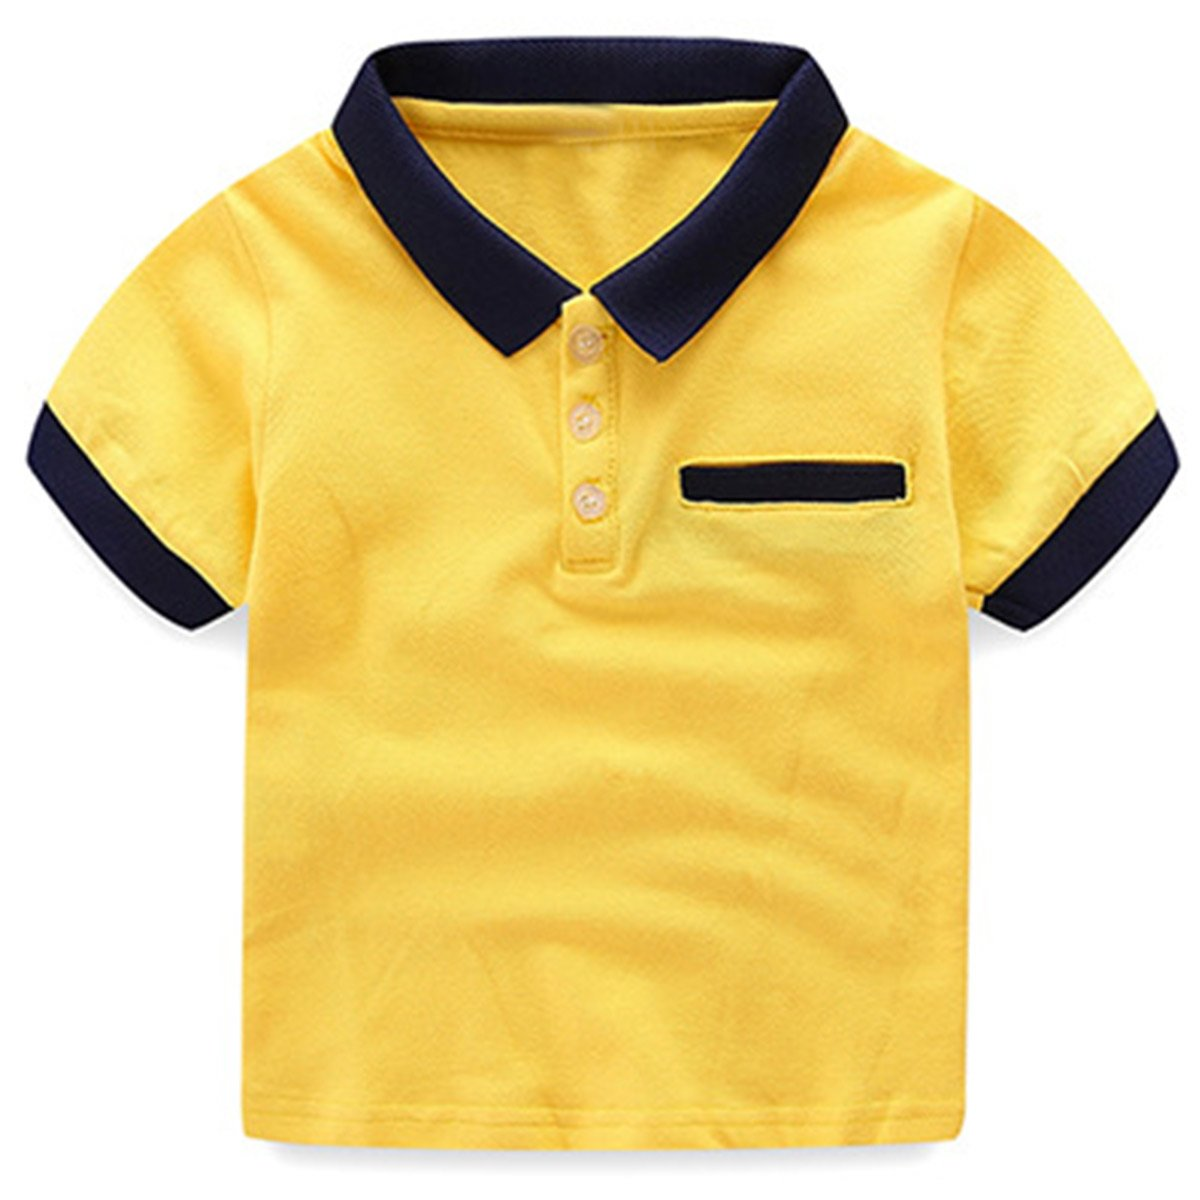 Gfsoediden Cotton Short Sleeve Solid Polo Front Pocket T Shirt for Boys